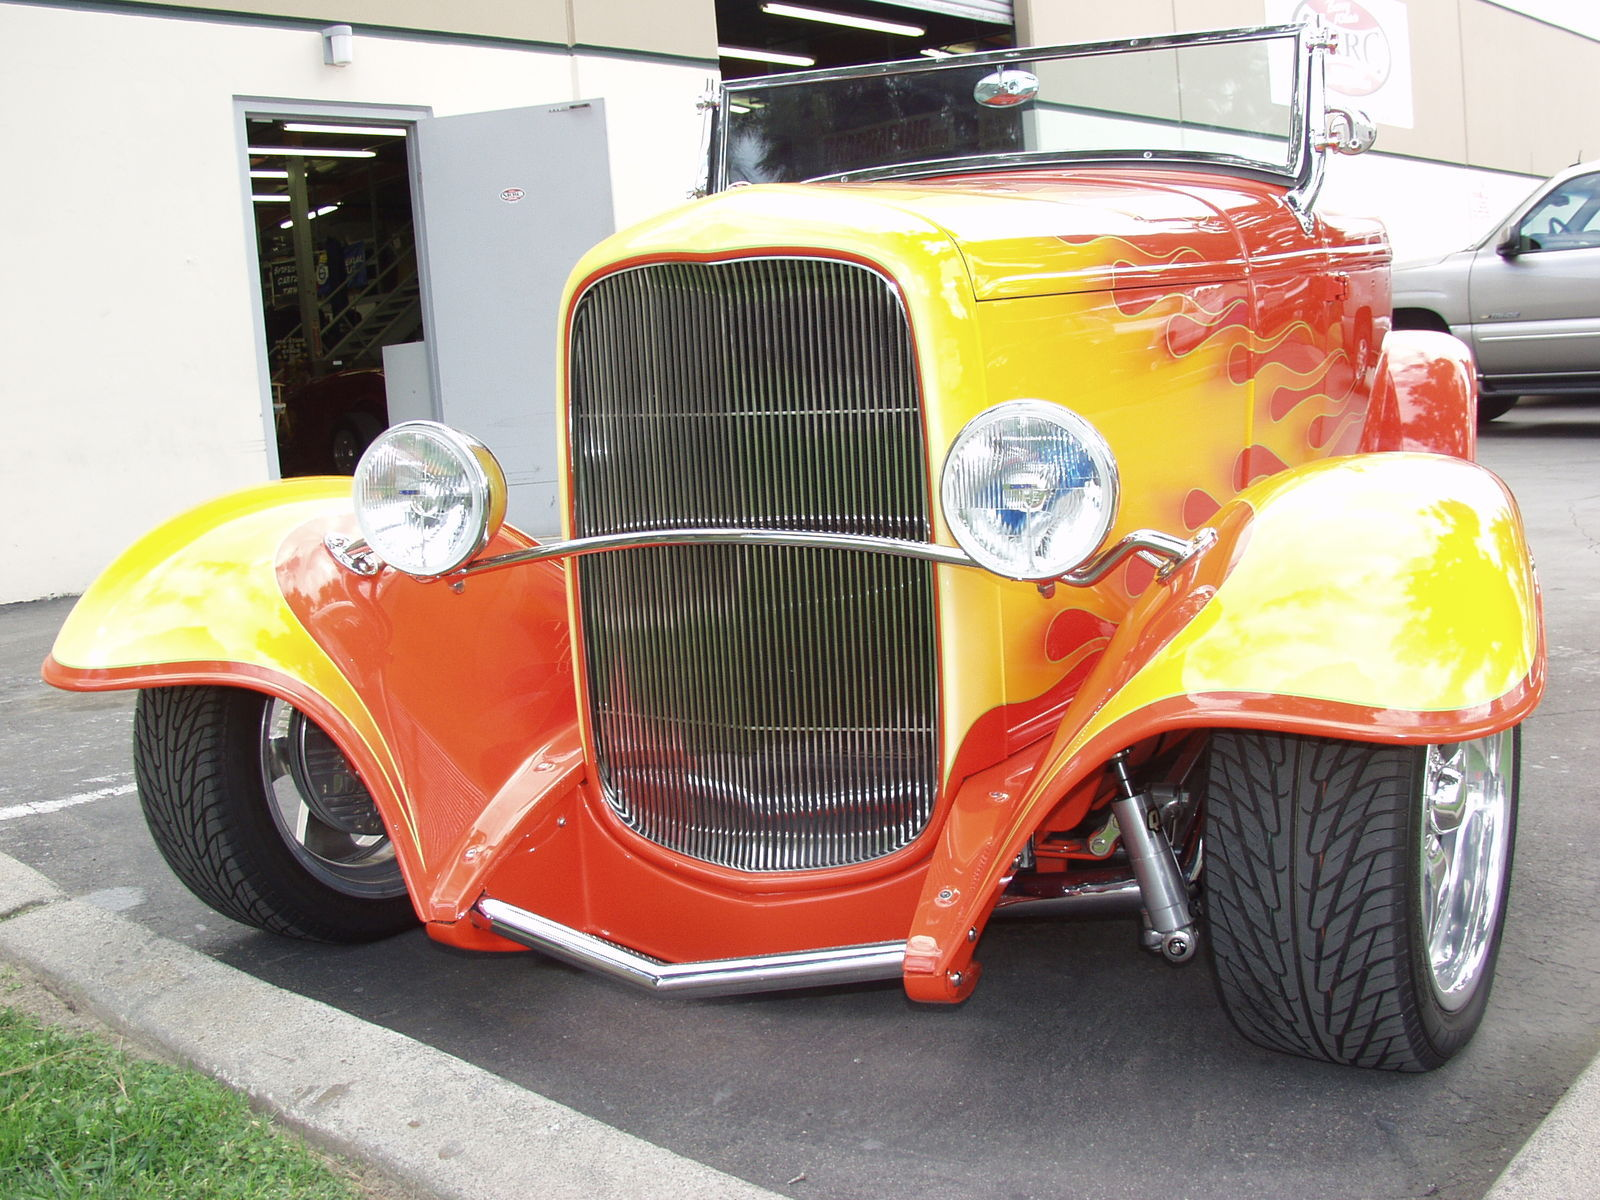 | HOT ROD on FIRE